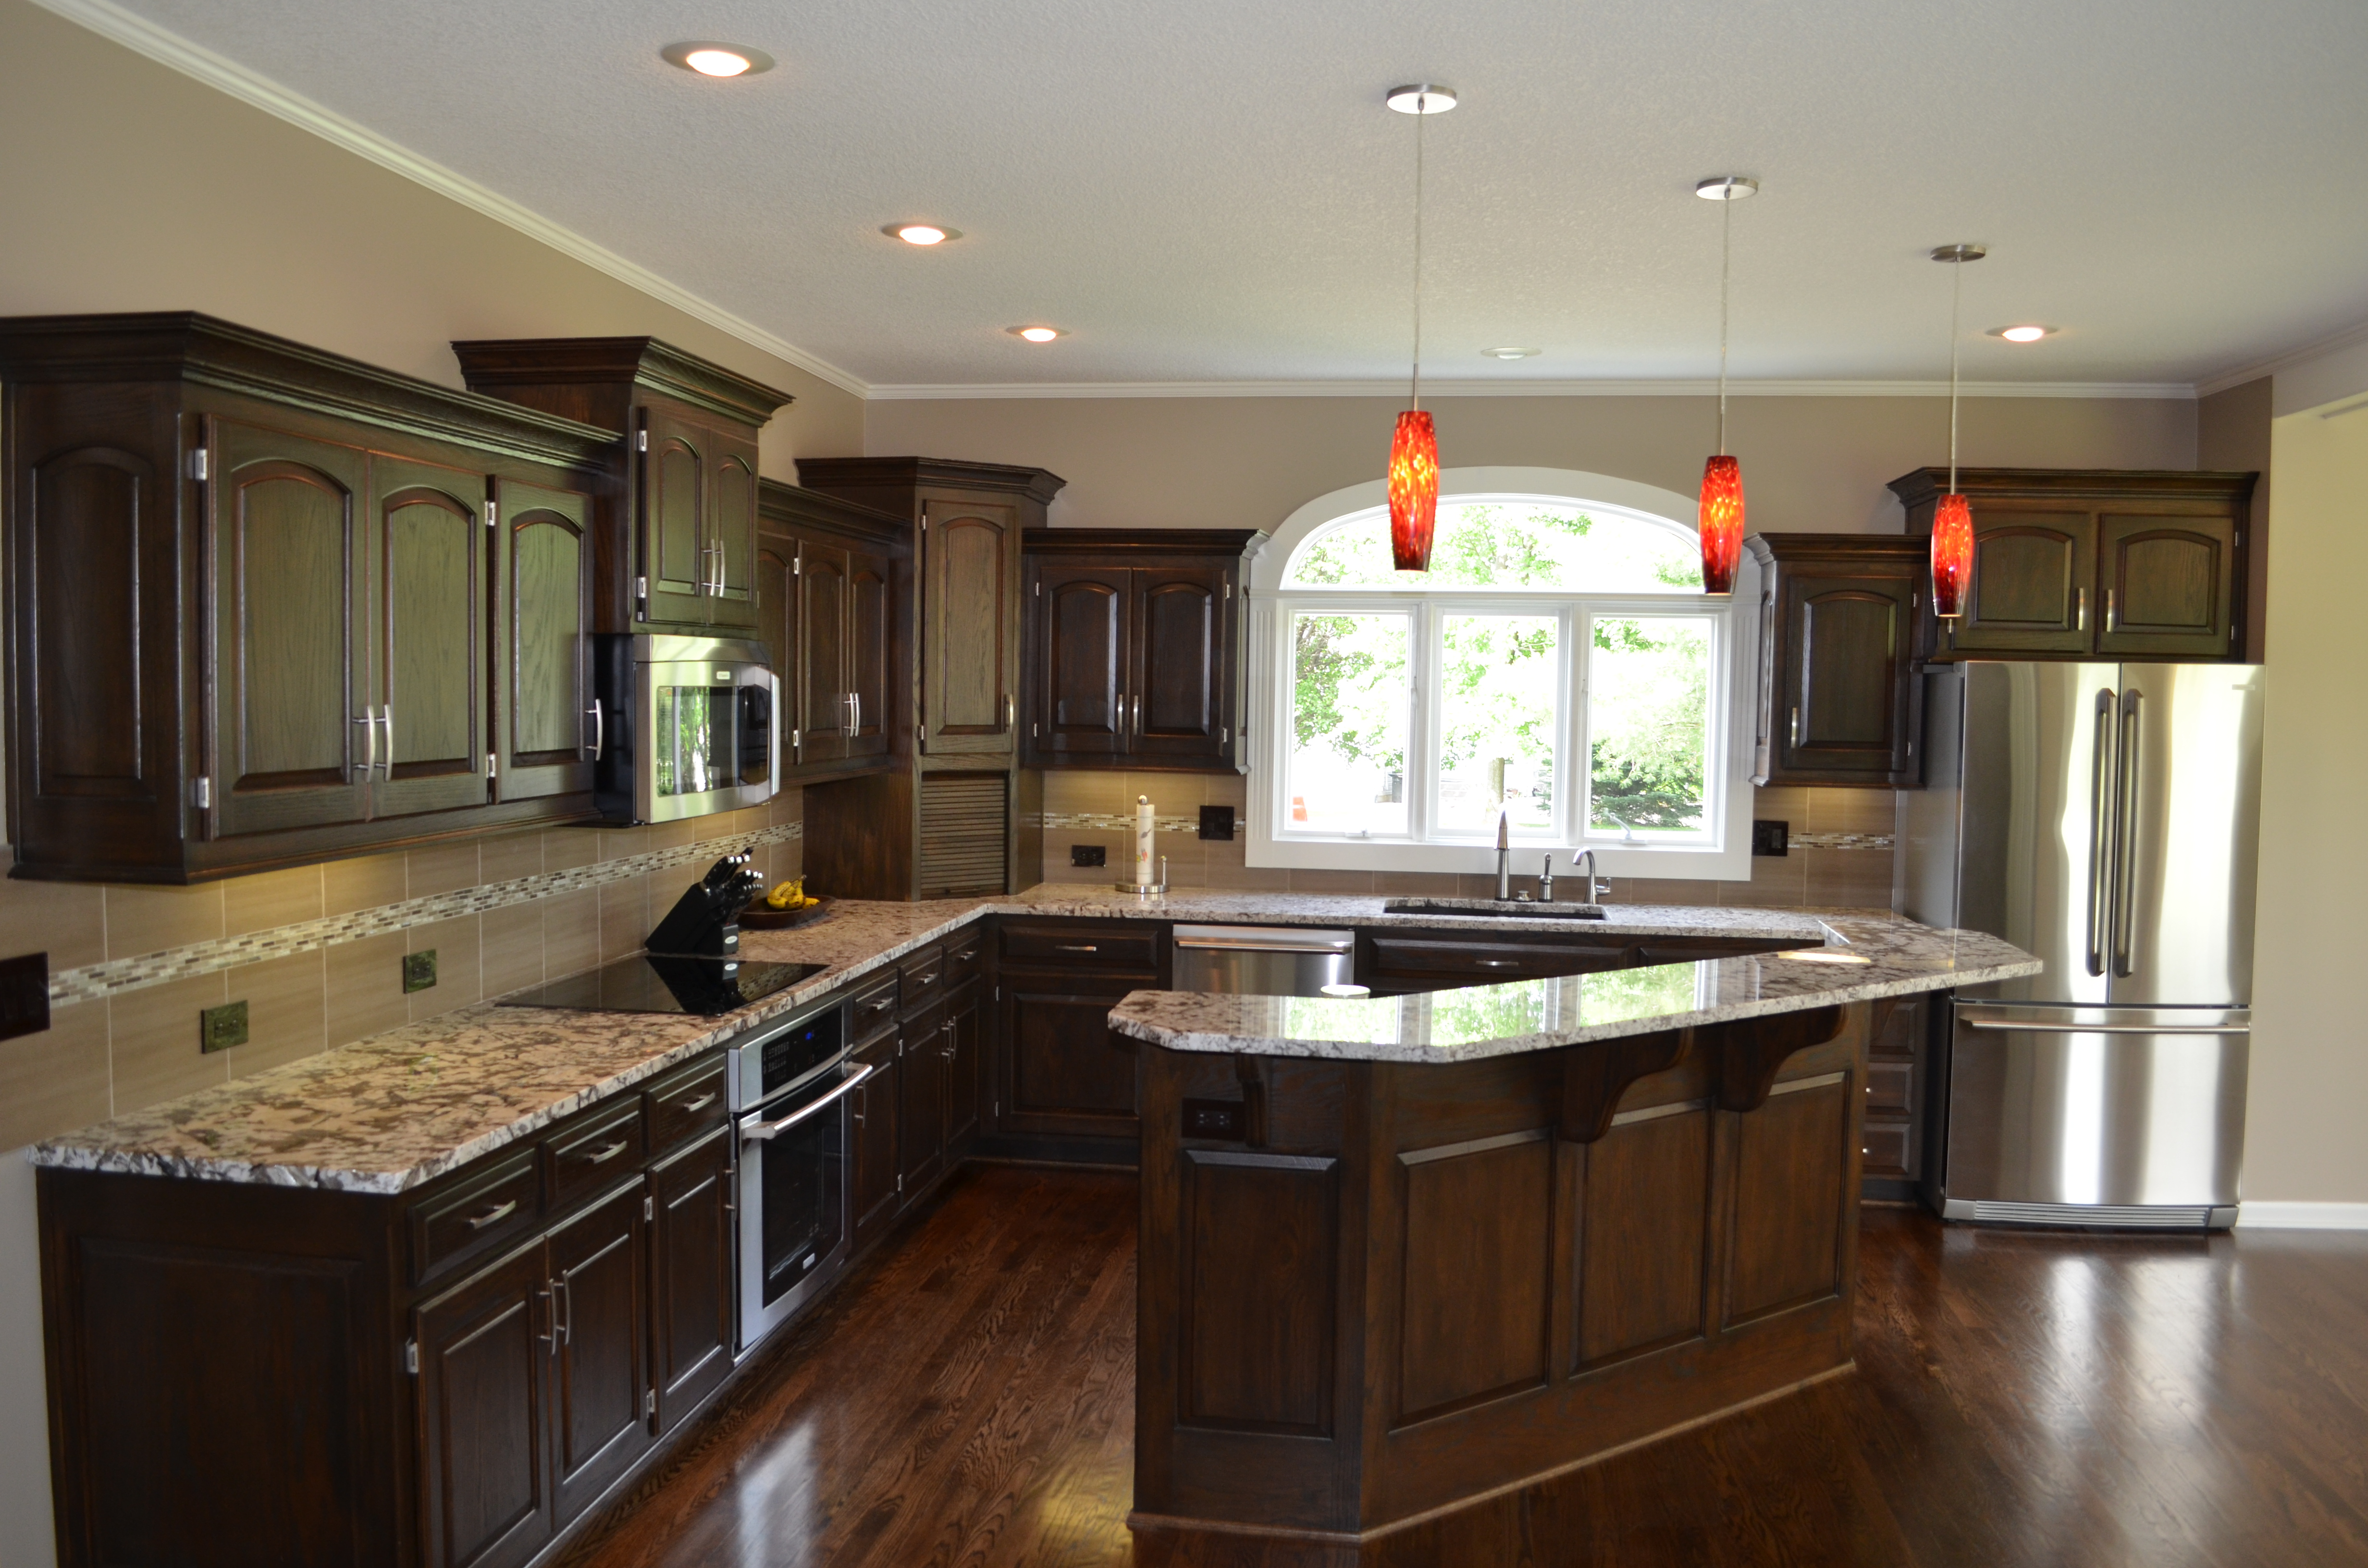 Kitchen remodeling kitchen design kansas cityremodeling for Kitchen modeling ideas